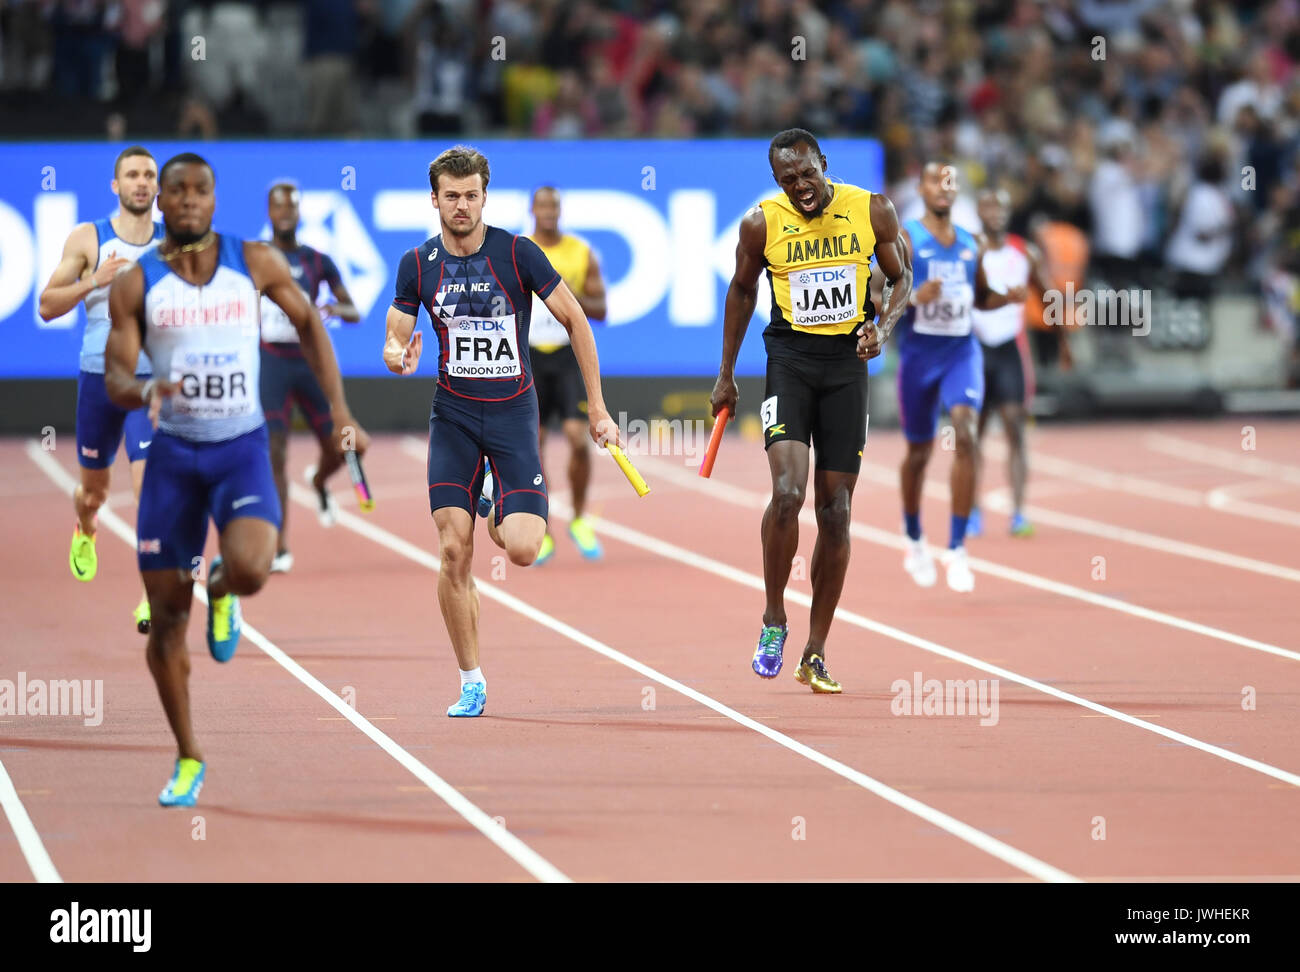 London, UK. 12th August, 2017. Usain Bolt pulled up injured in his final ever race, at the 4x100 relays at the IAAF - Stock Image